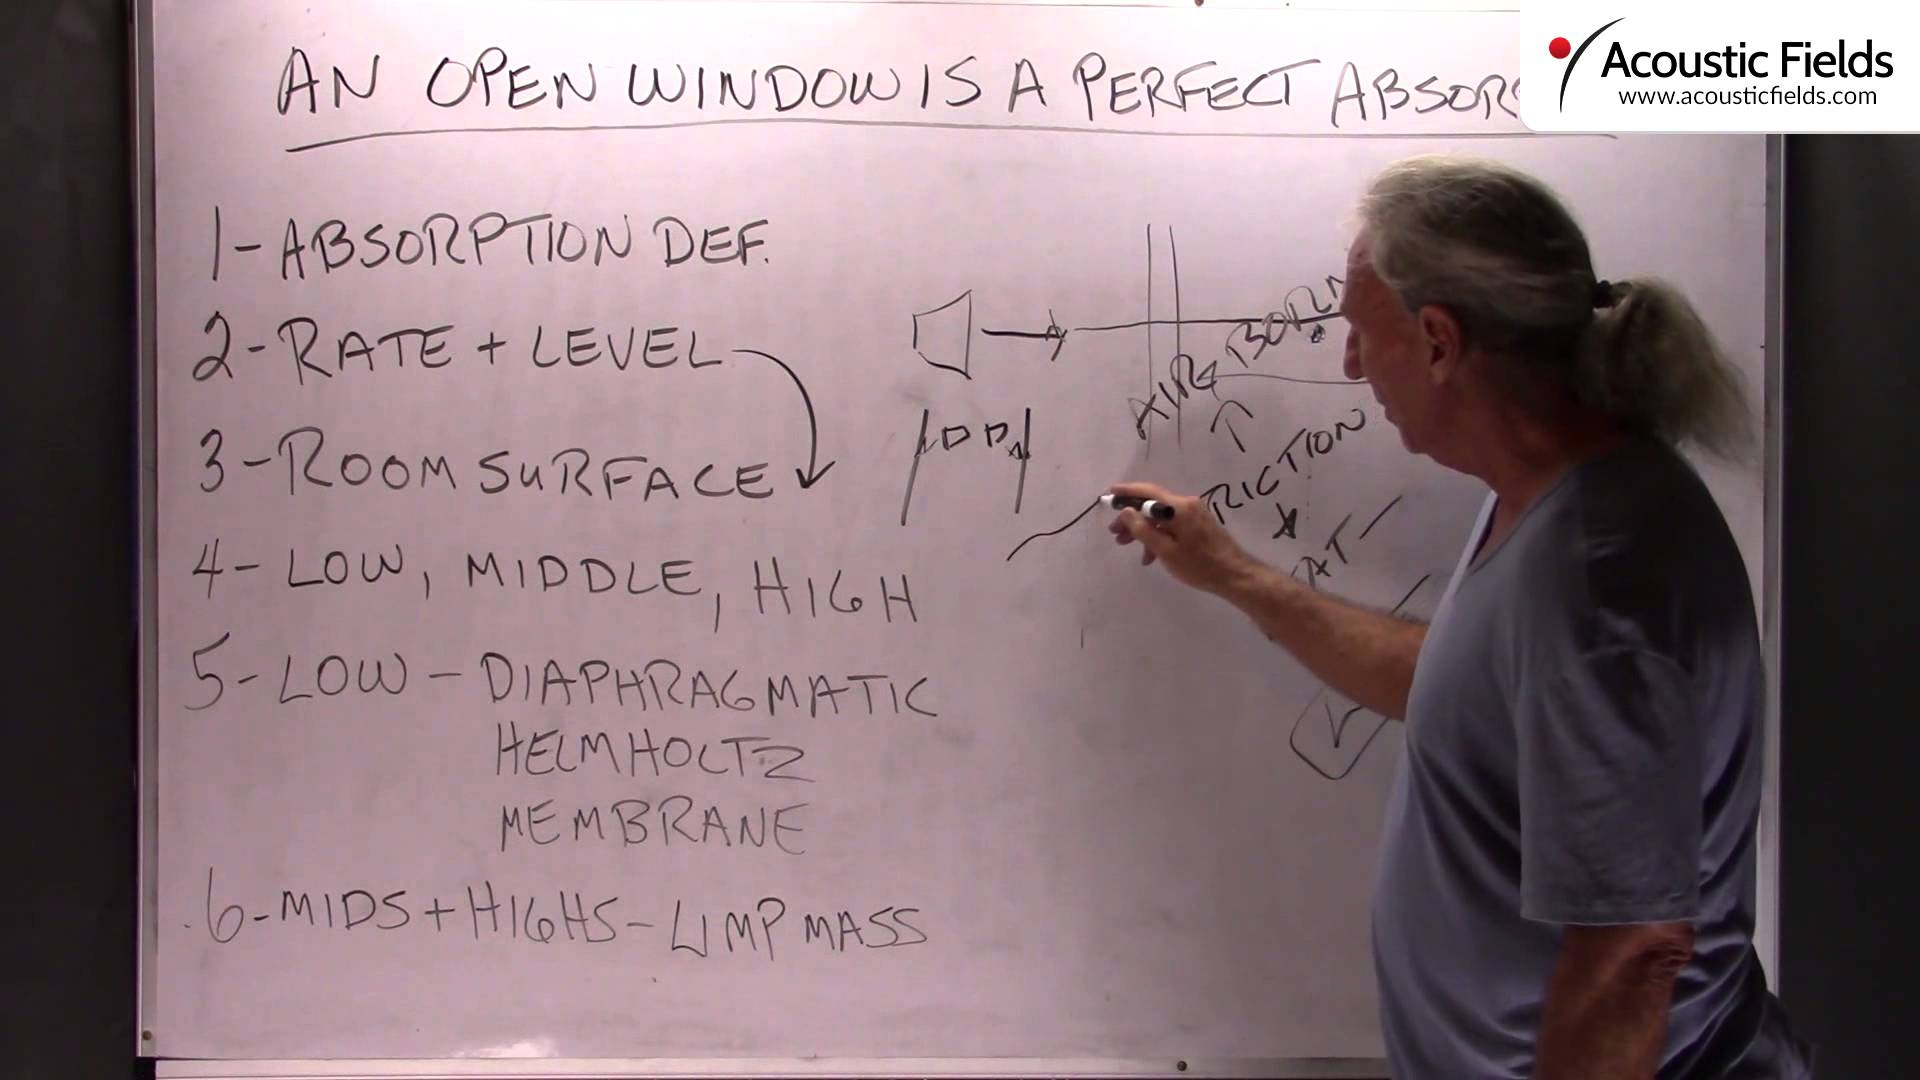 An Open Window is a Perfect Absorber